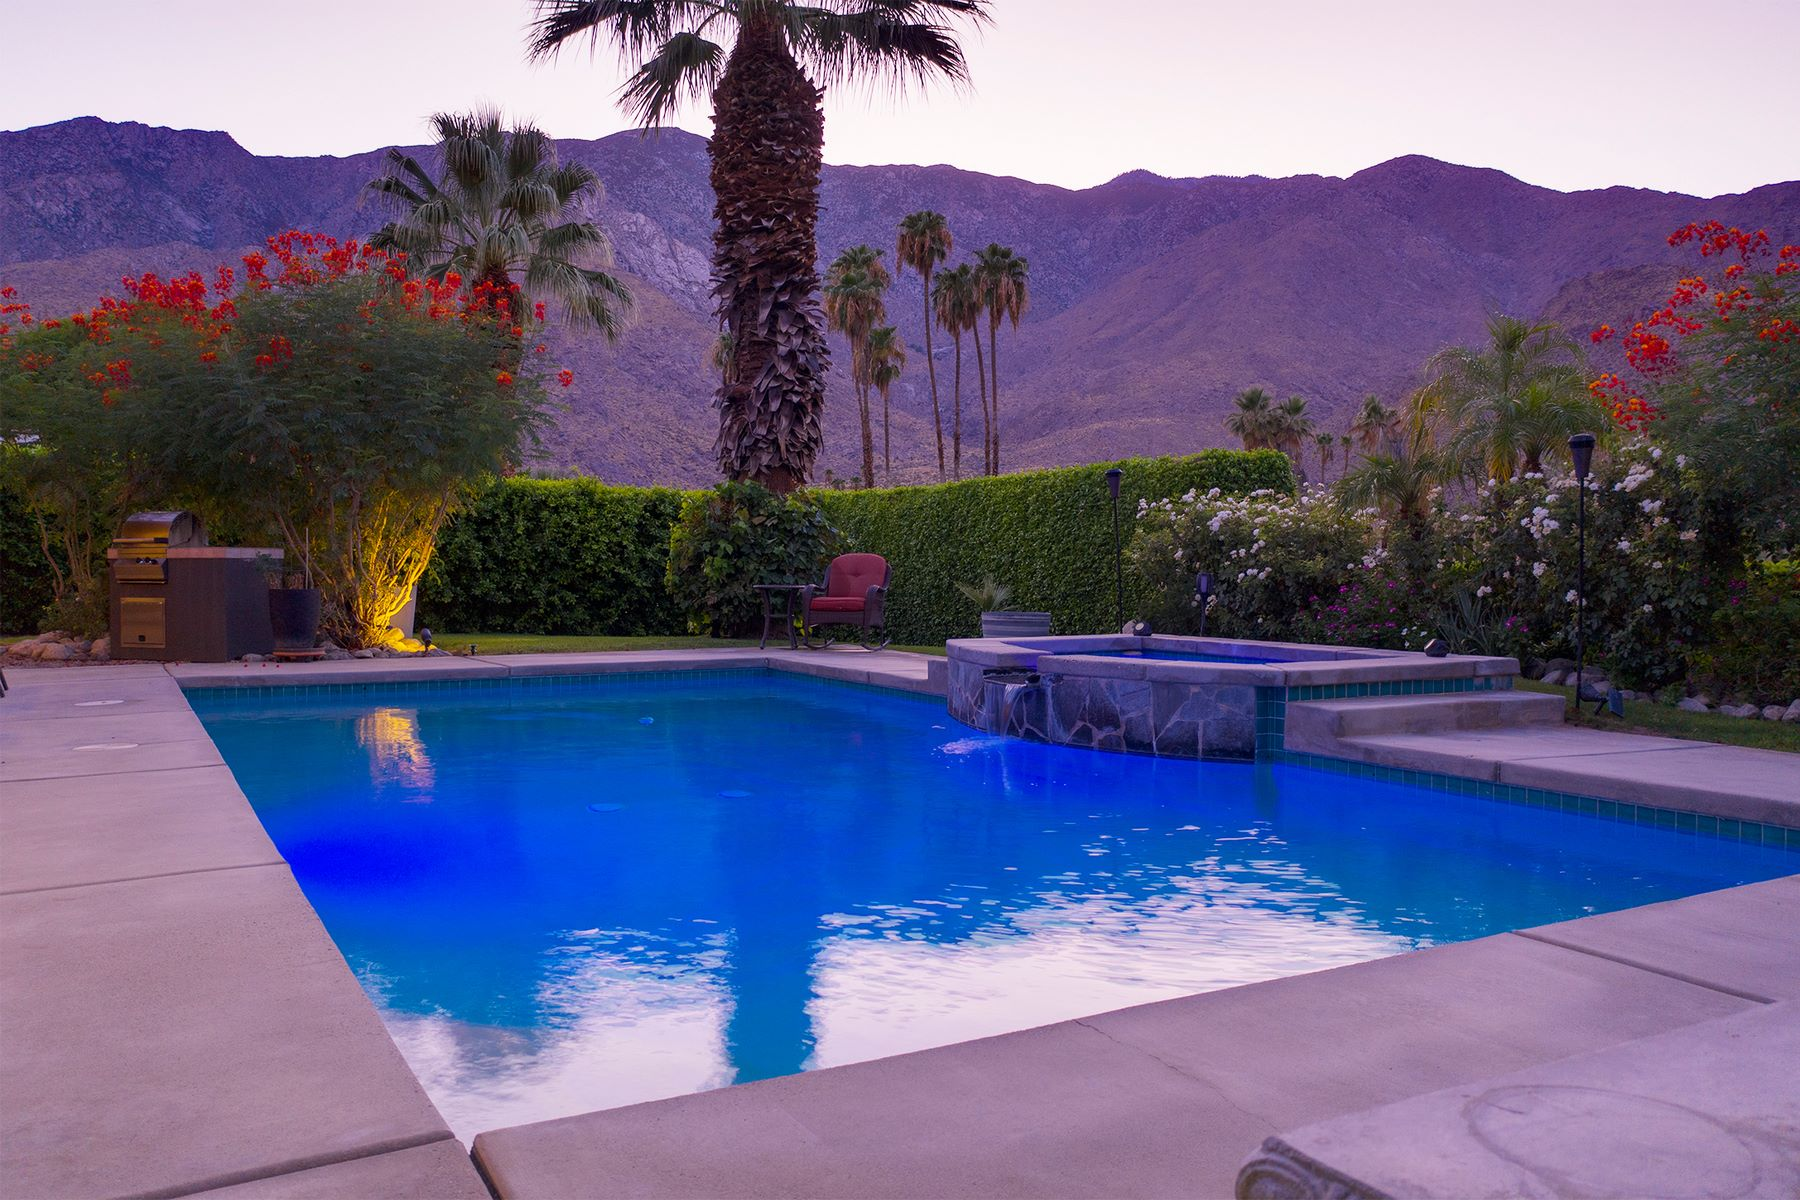 Single Family Homes for Sale at 450 E Bogert Trail Palm Springs, California 92264 United States